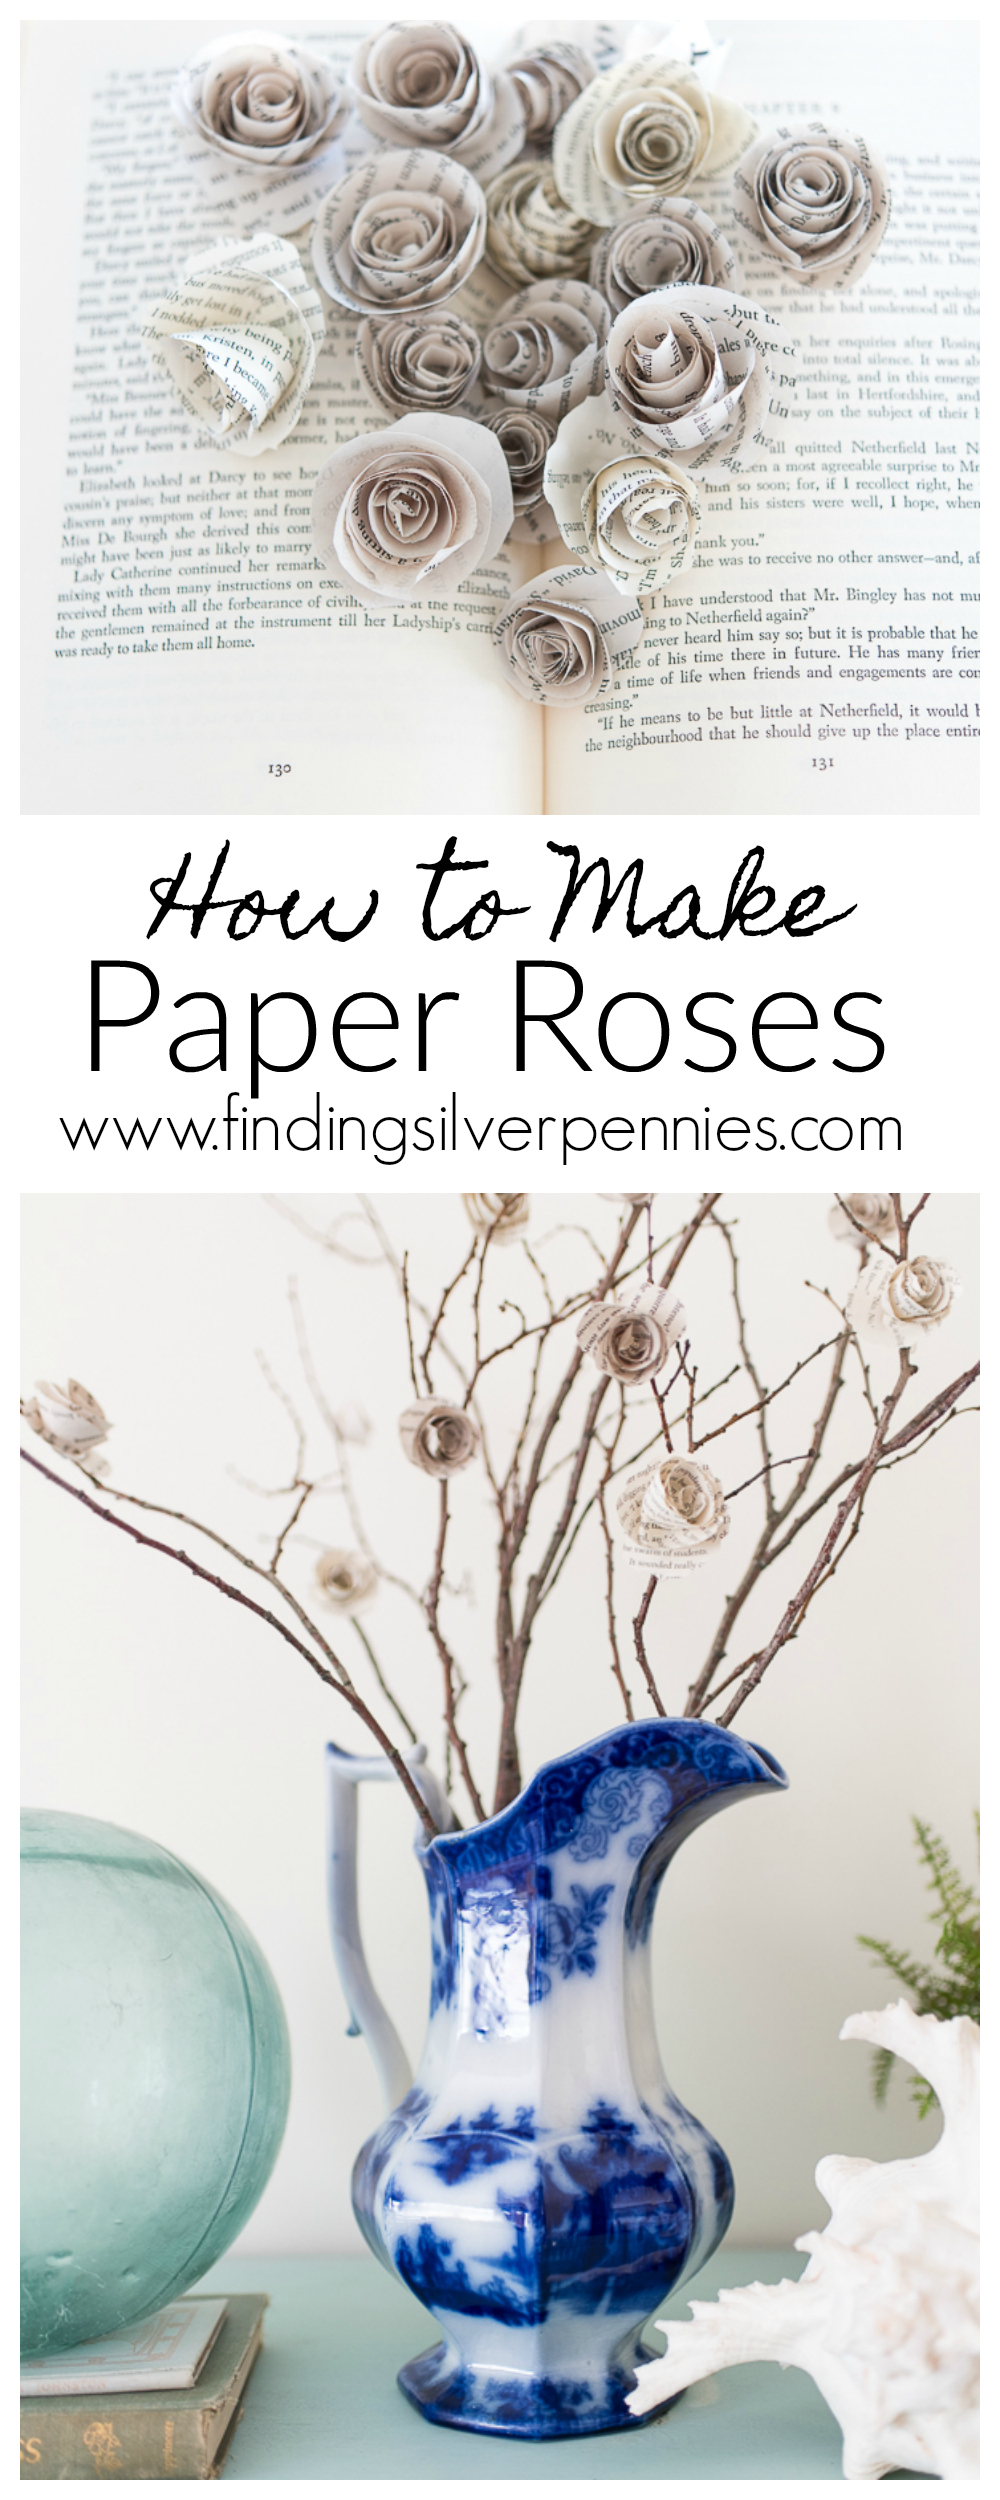 How to Make Paper Roses - Finding Silver Pennies